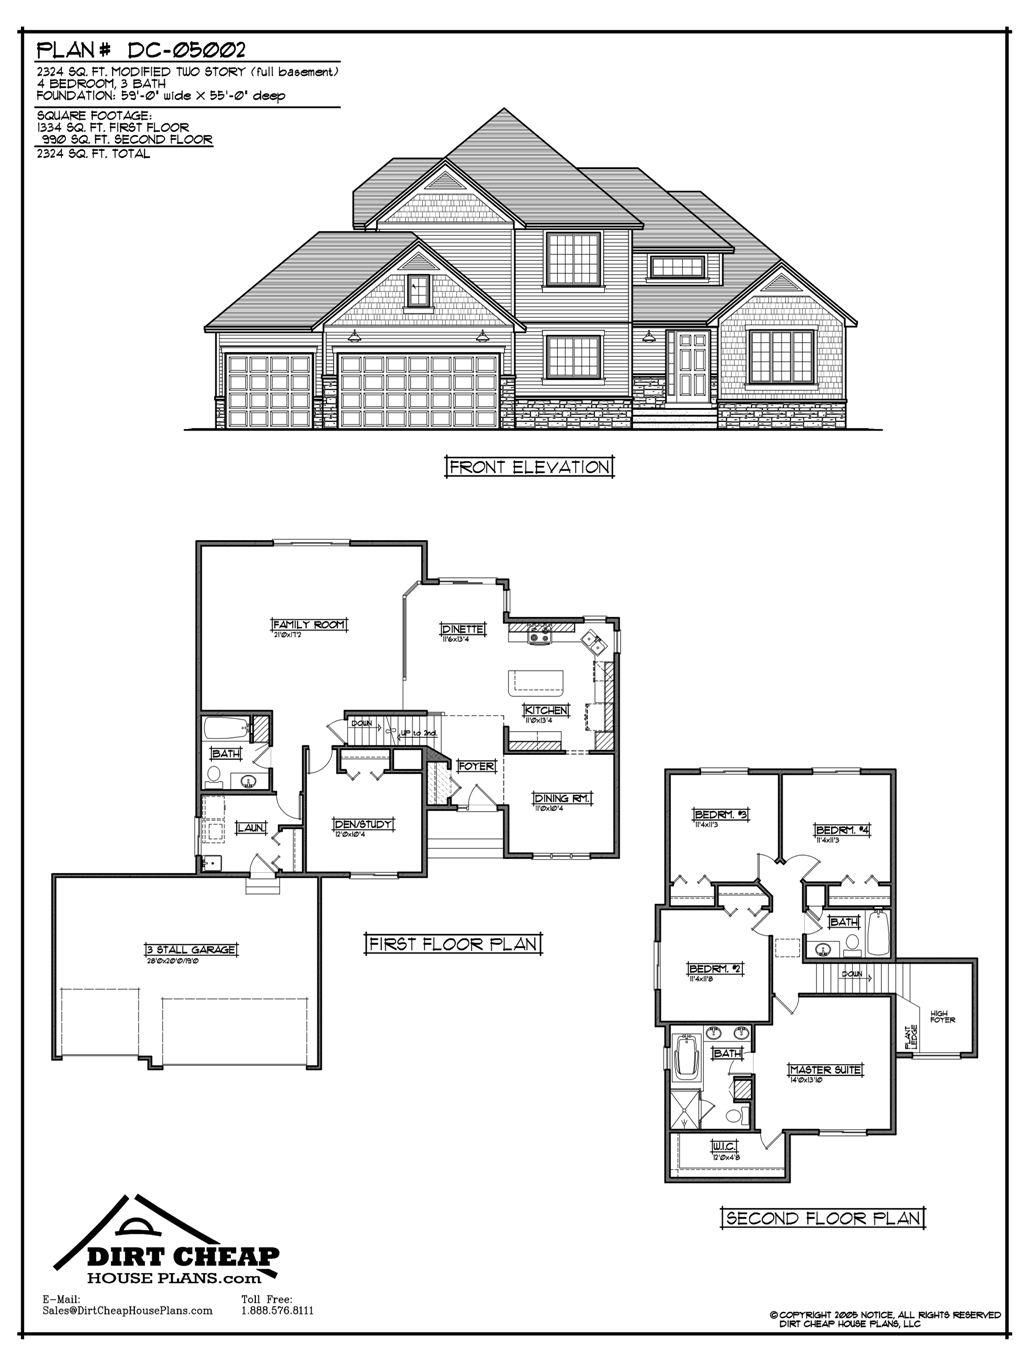 images about House plans on Pinterest   House plans  Two       images about House plans on Pinterest   House plans  Two story houses and Floor plans